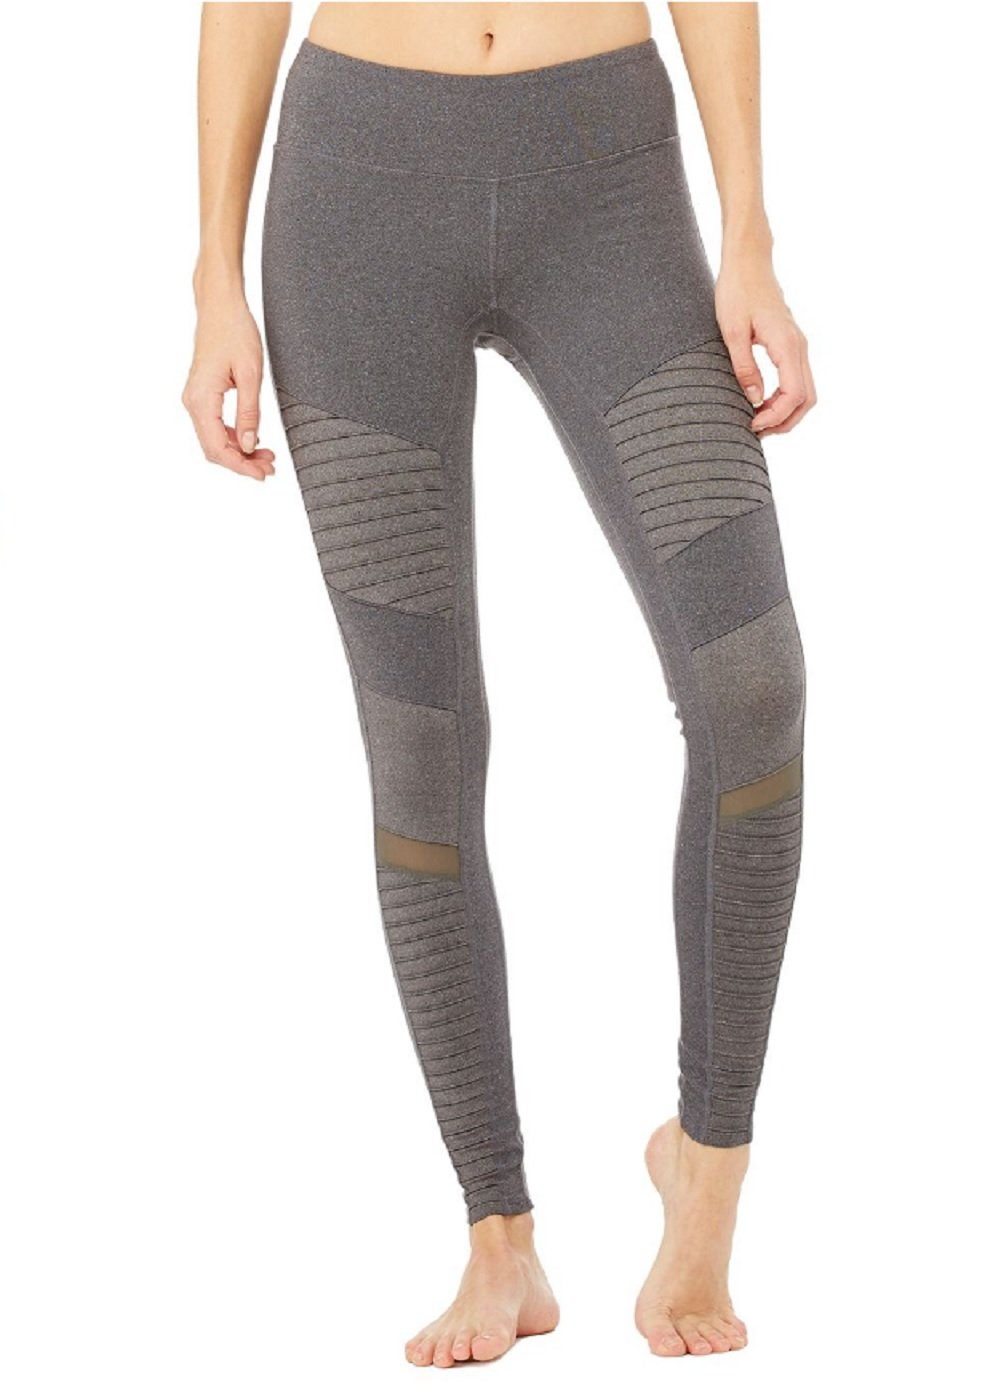 Alo Yoga Women's Moto Legging, Stormy Heather/Stormy Heather, XS